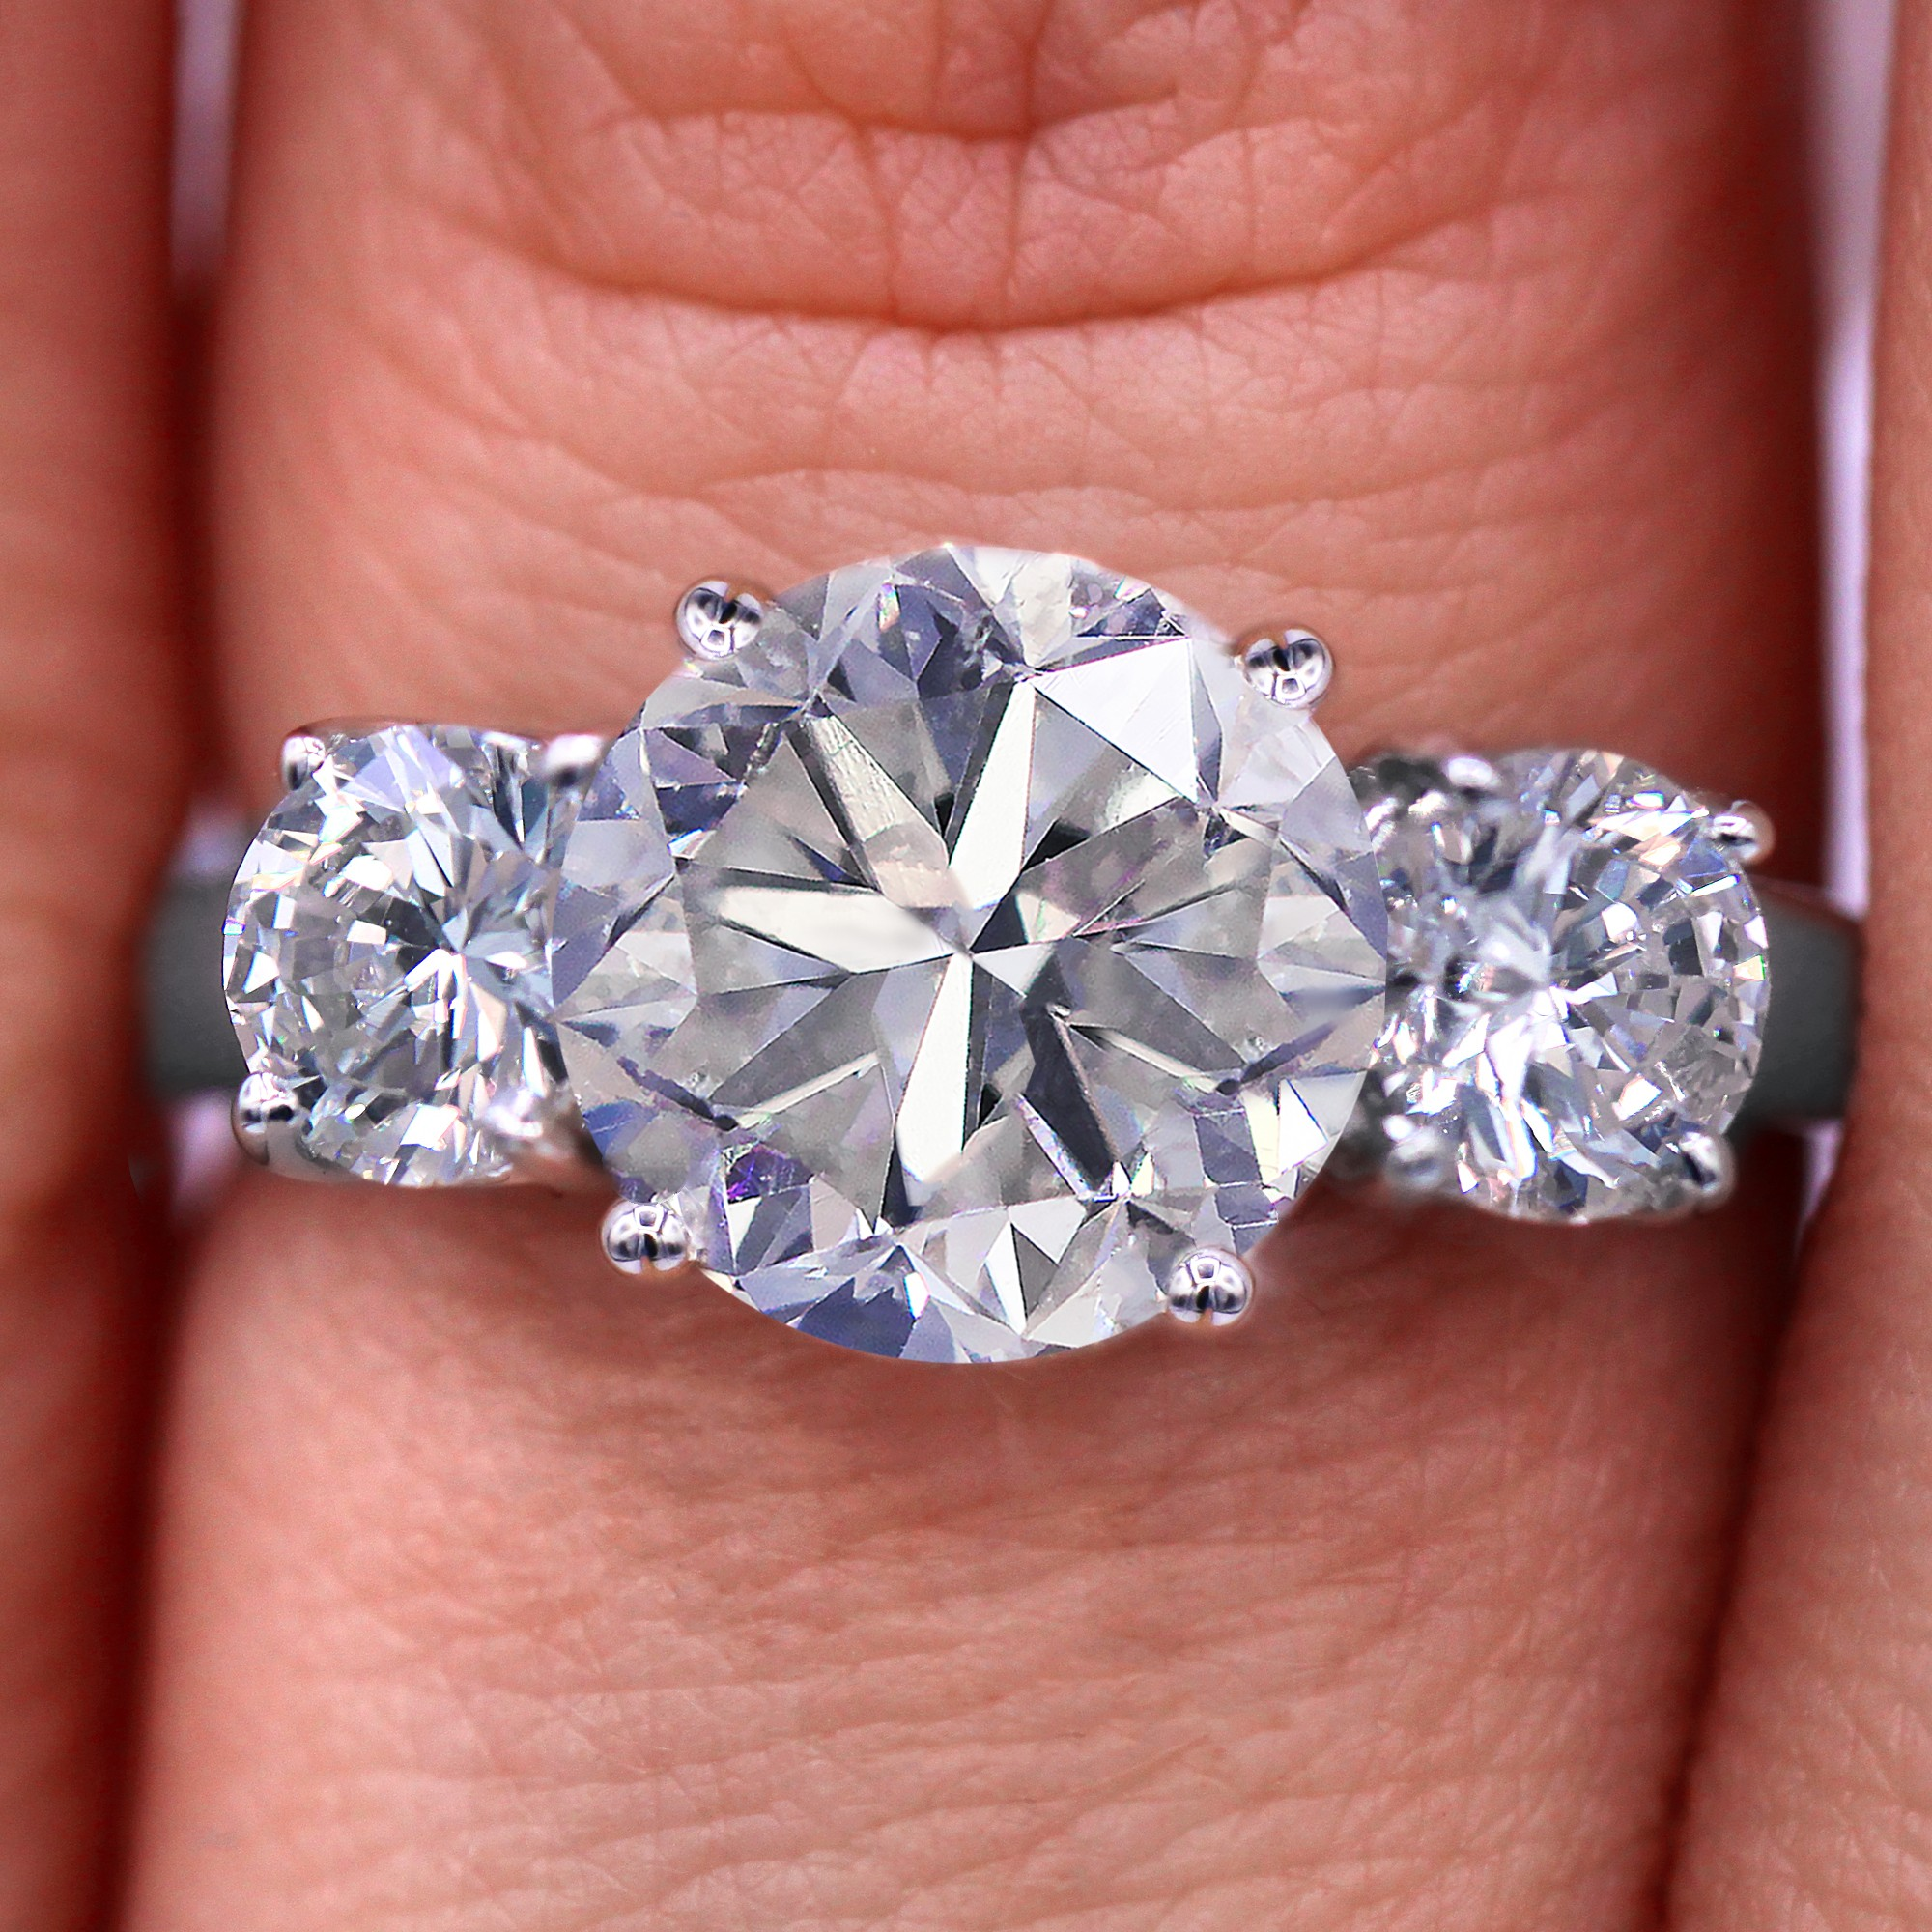 Magnificent three stone diamond ring with 3.06 TCW